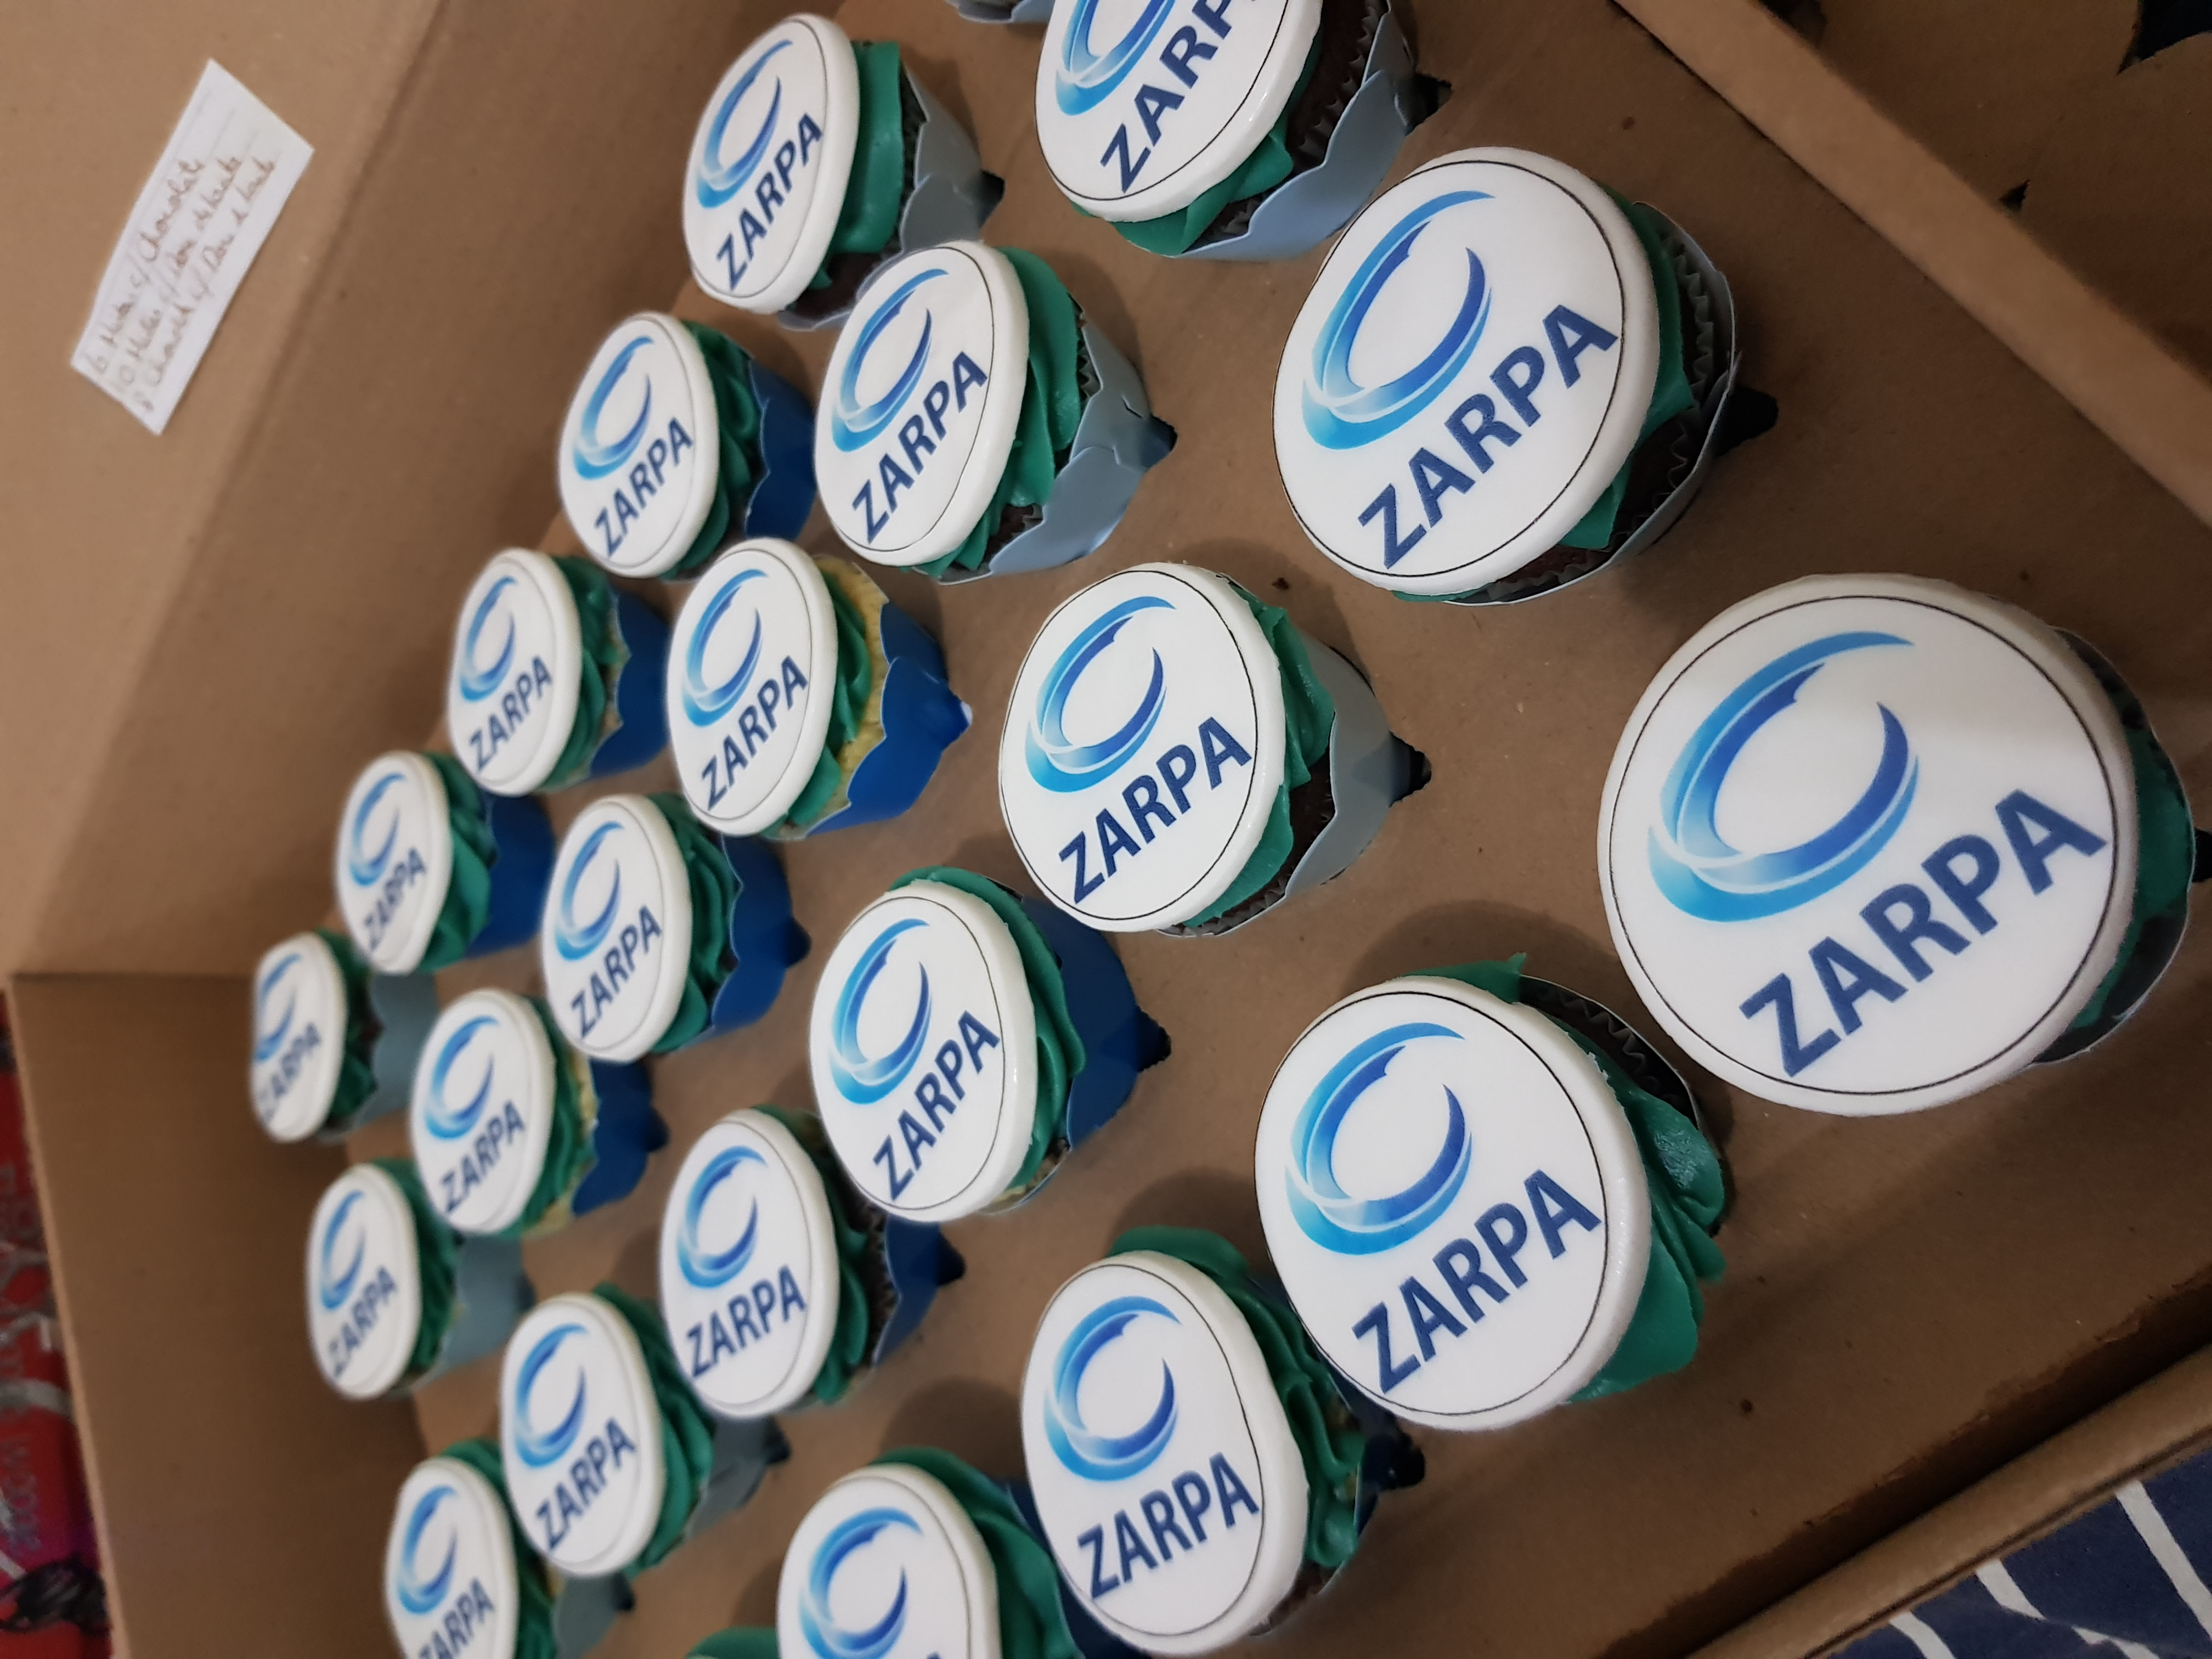 Zarpa - Professionals lead the way